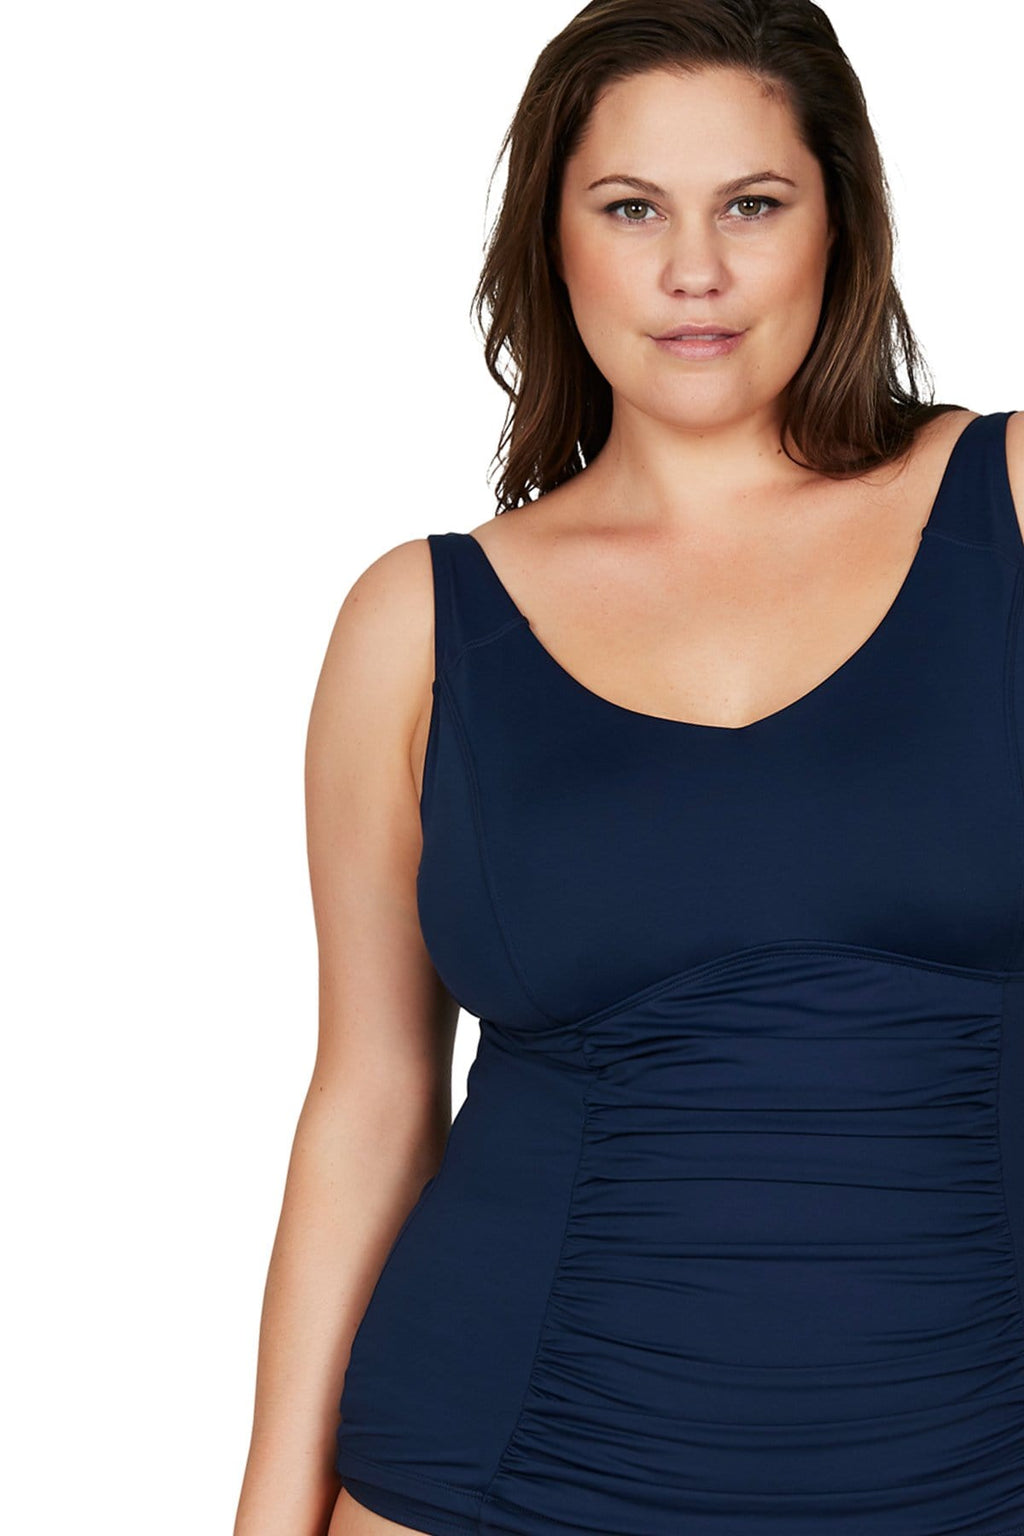 Artesands Top Navy Hues Raphael E/F Underwire Tankini Top Plus Size Curvy